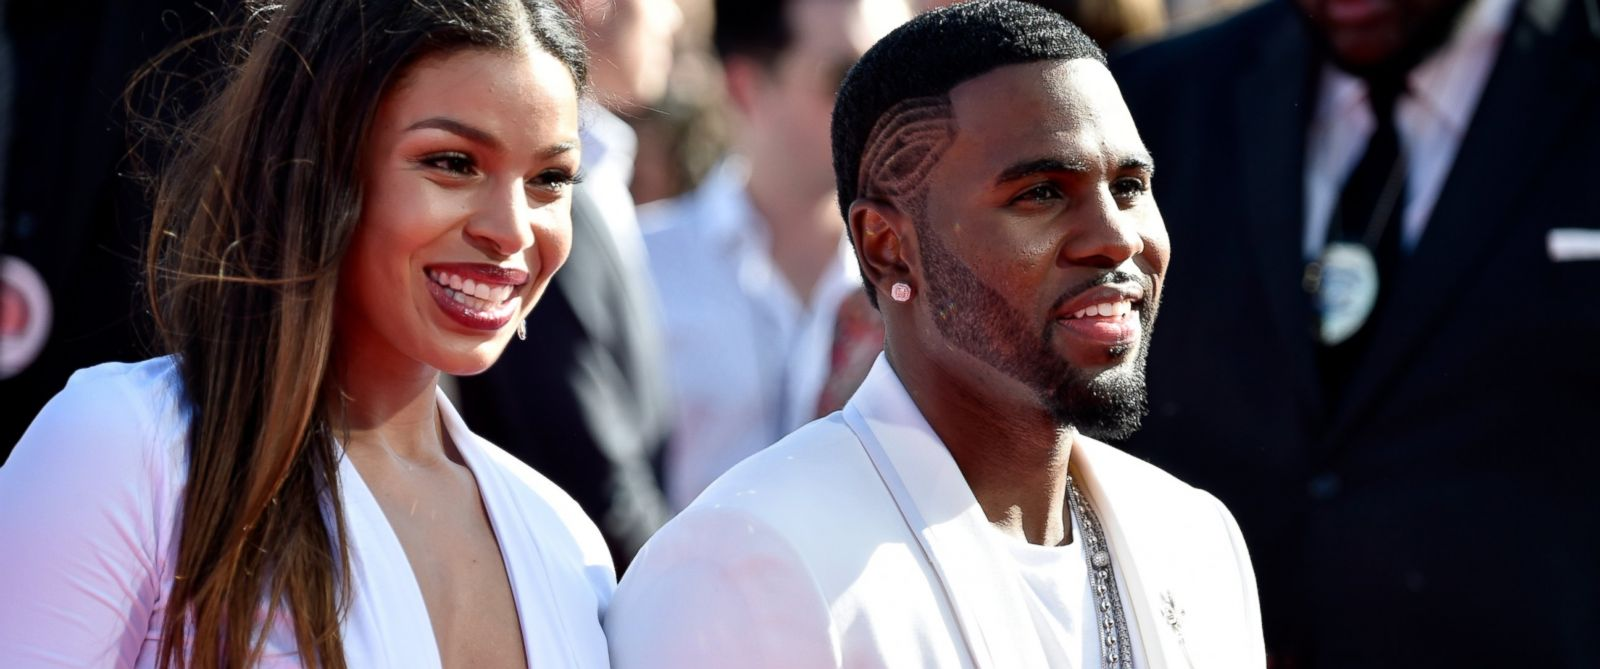 PHOTO: Recording artists Jordin Sparks and Jason Derulo attend the 2014 MTV Video Music Awards